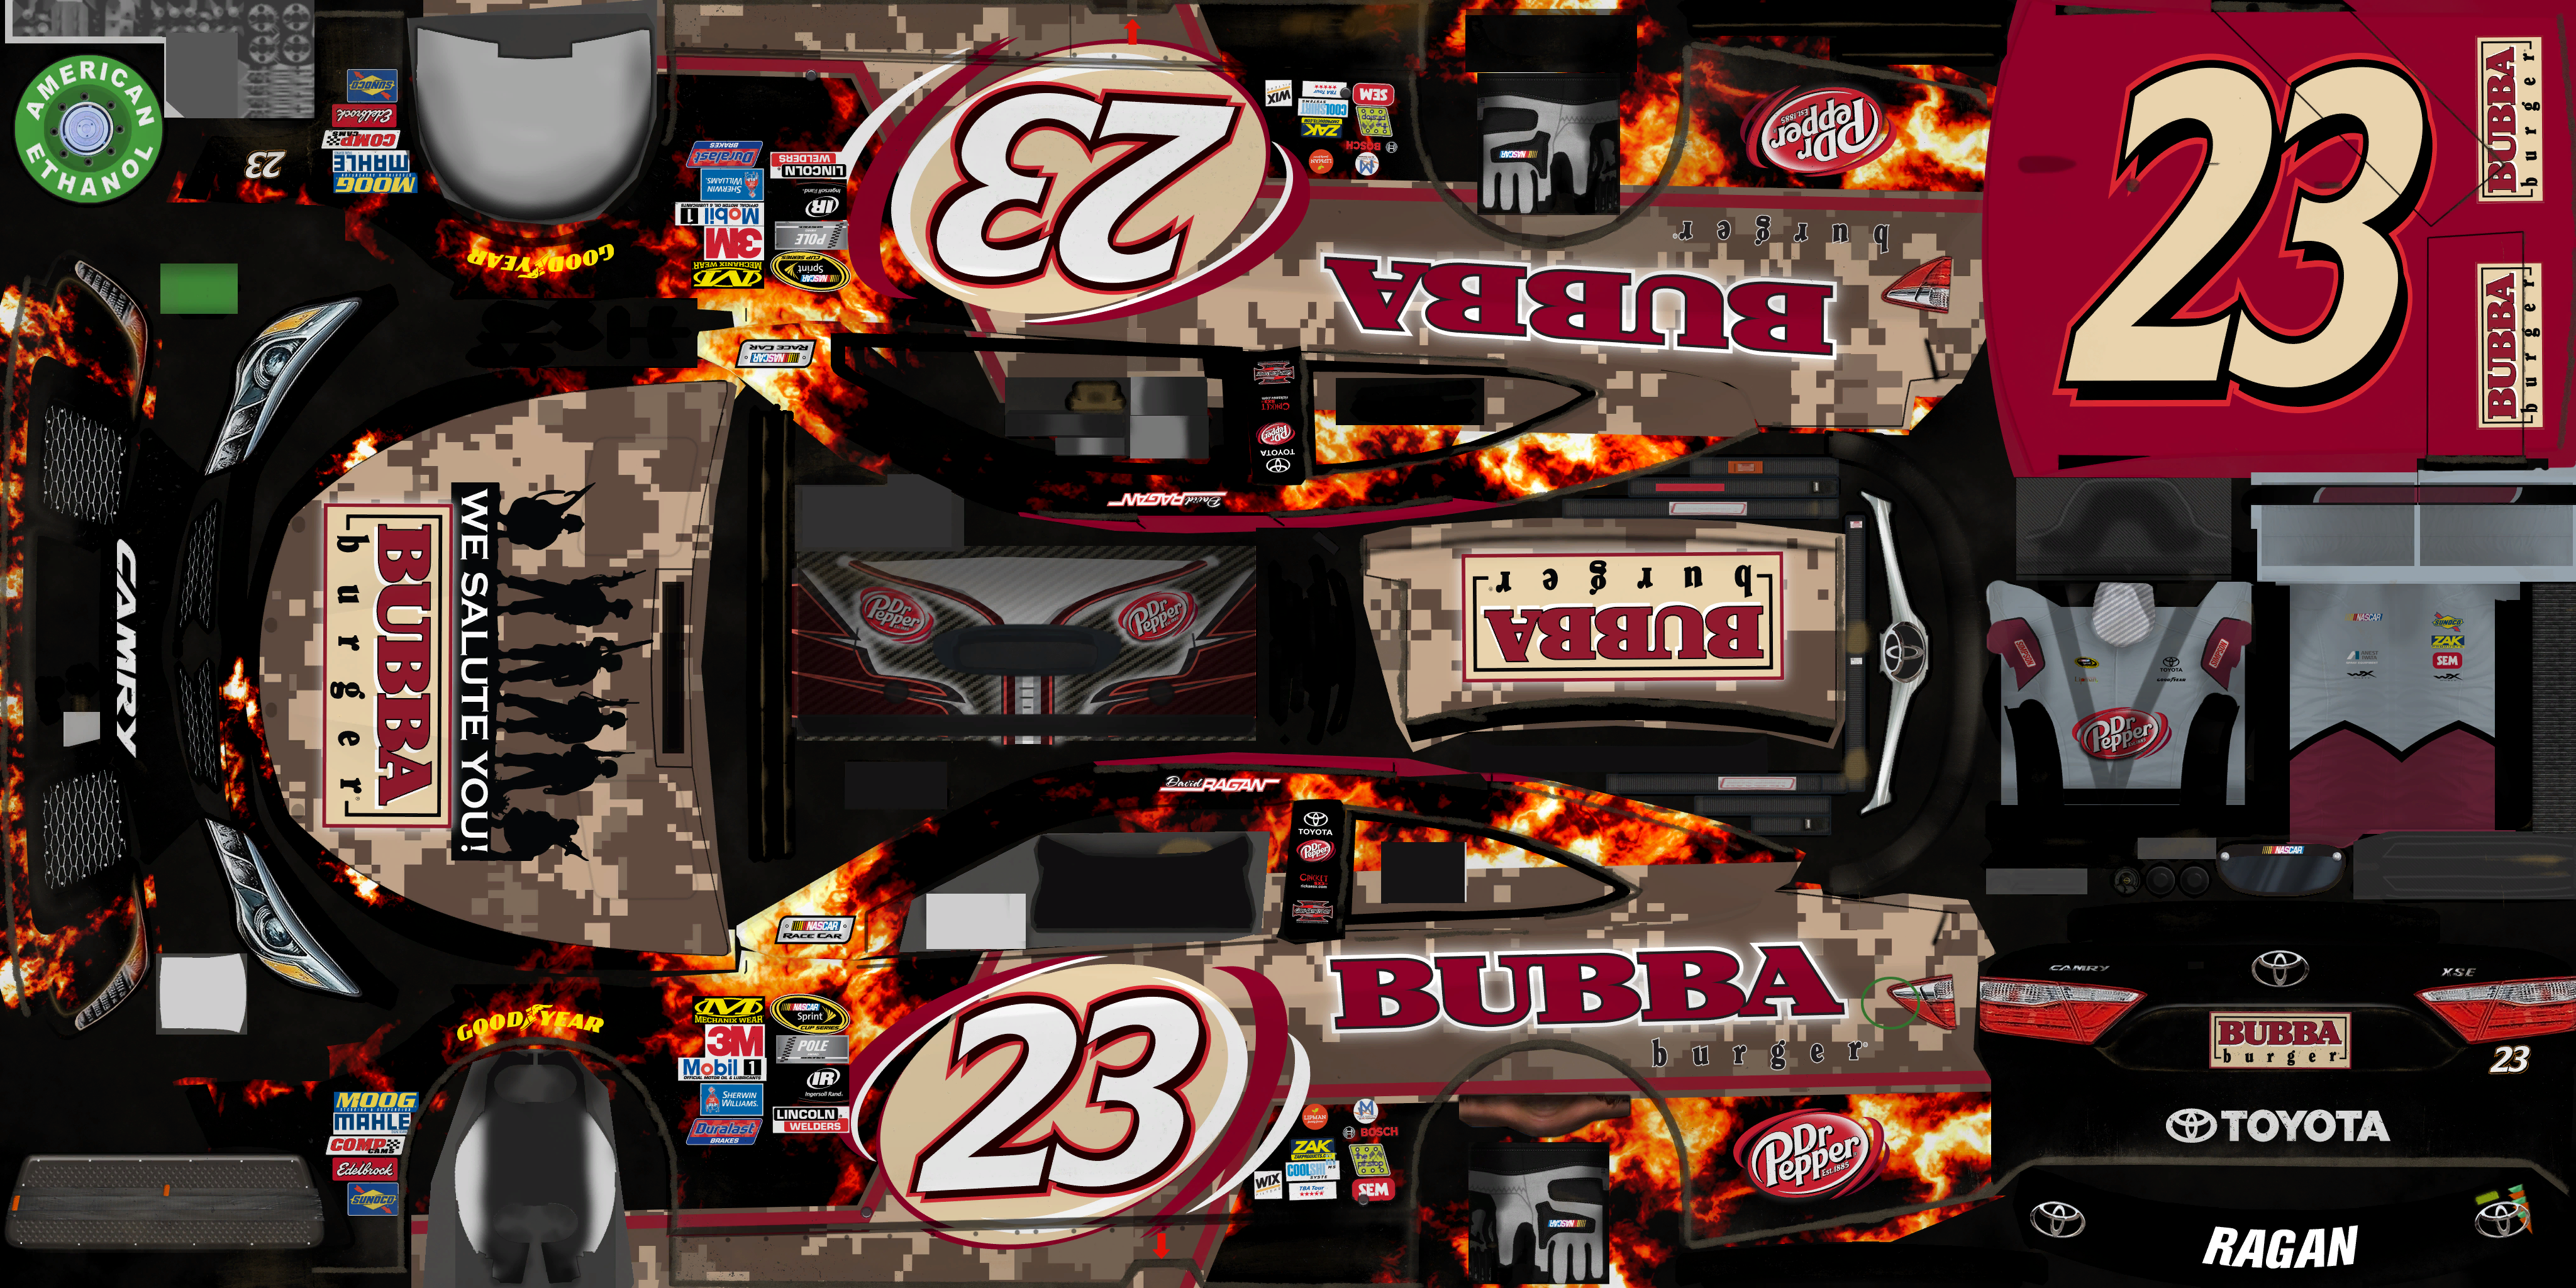 #23 David Ragan (BUBBA Burger)